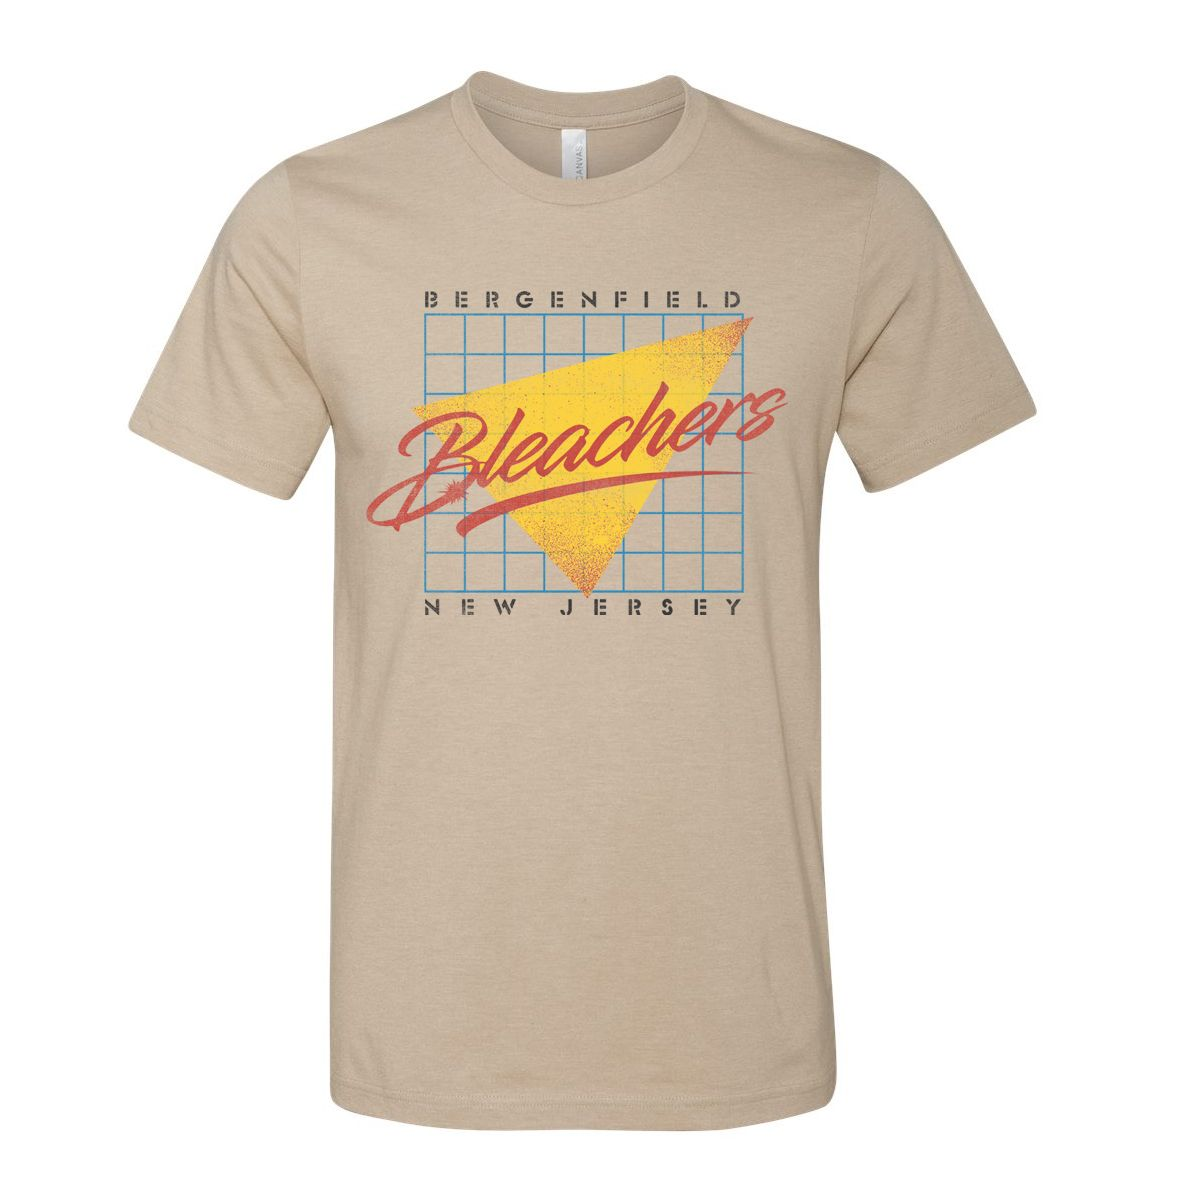 bf25089989ccd Welcome to the Bleachers Official Store! Shop online for Bleachers  merchandise, t-shirts, clothing, apparel, posters and accessories.